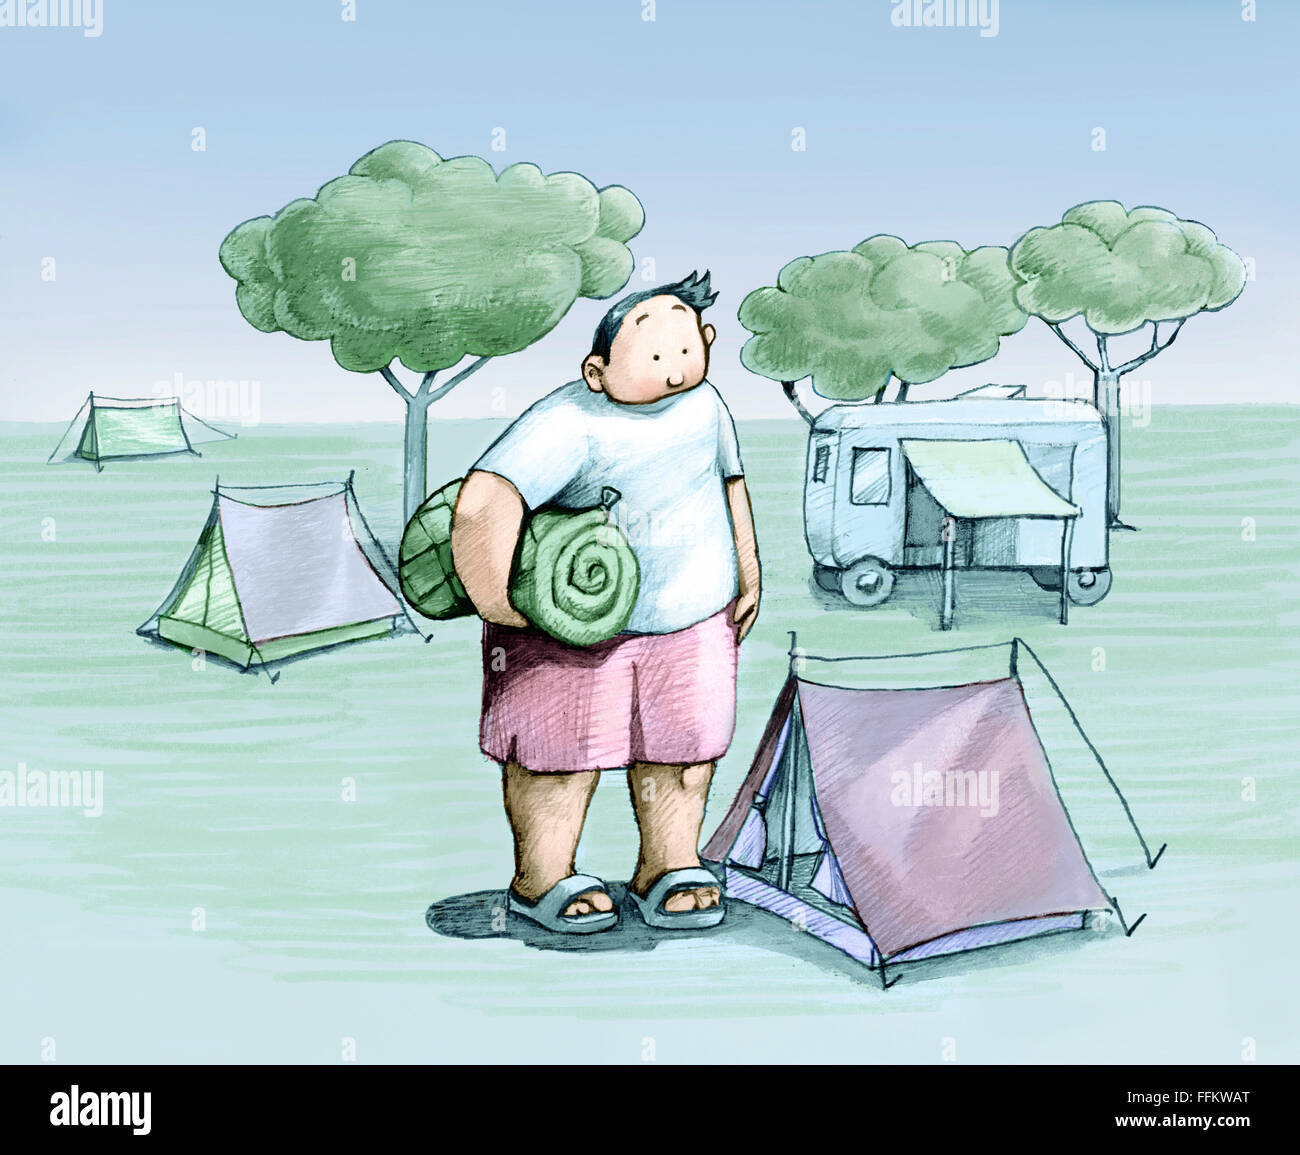 A chubby boy looks at a small tent where he should sleep - Stock Image